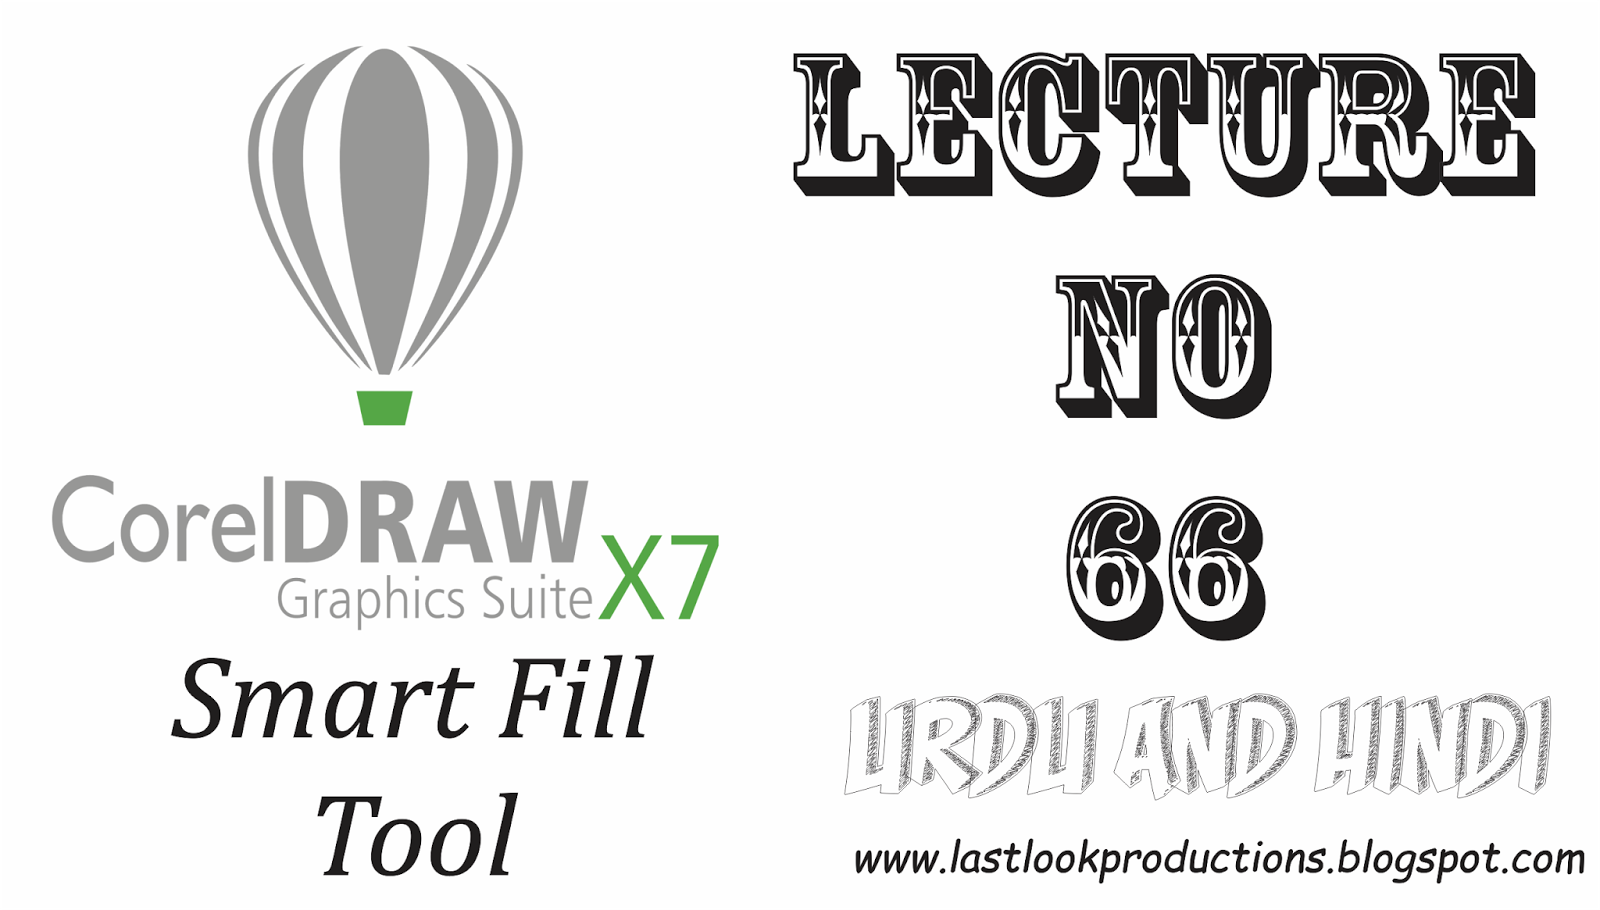 """Coreldraw graphic Suit x7 - """"Smart Fill Tool"""" - Lecture no"""